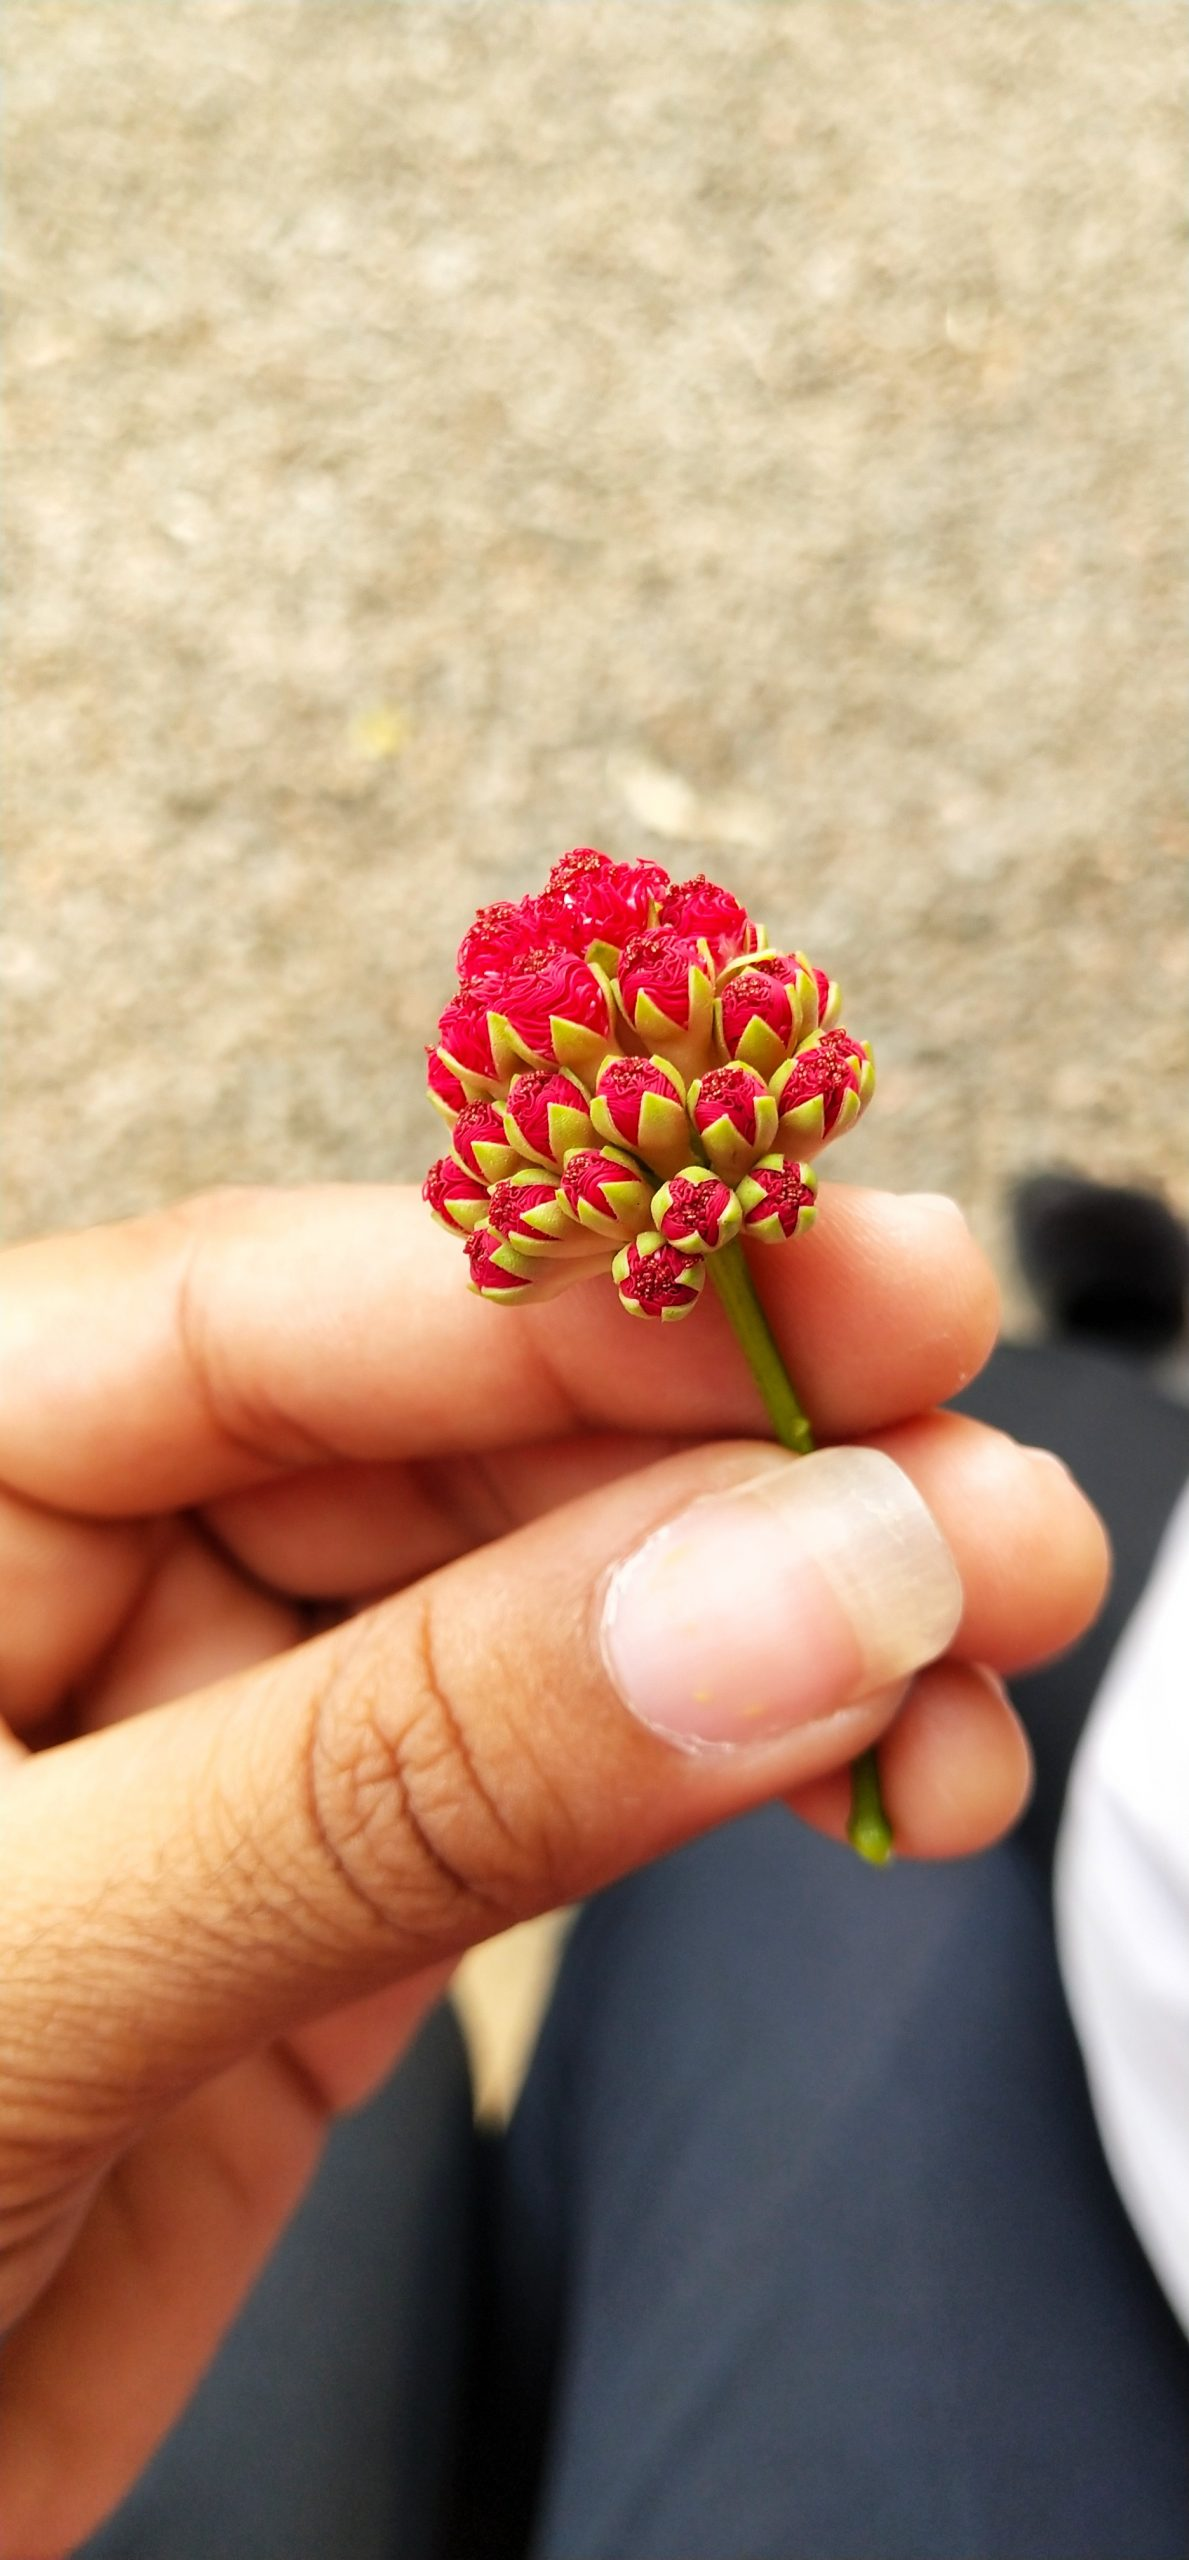 Small flower in hand